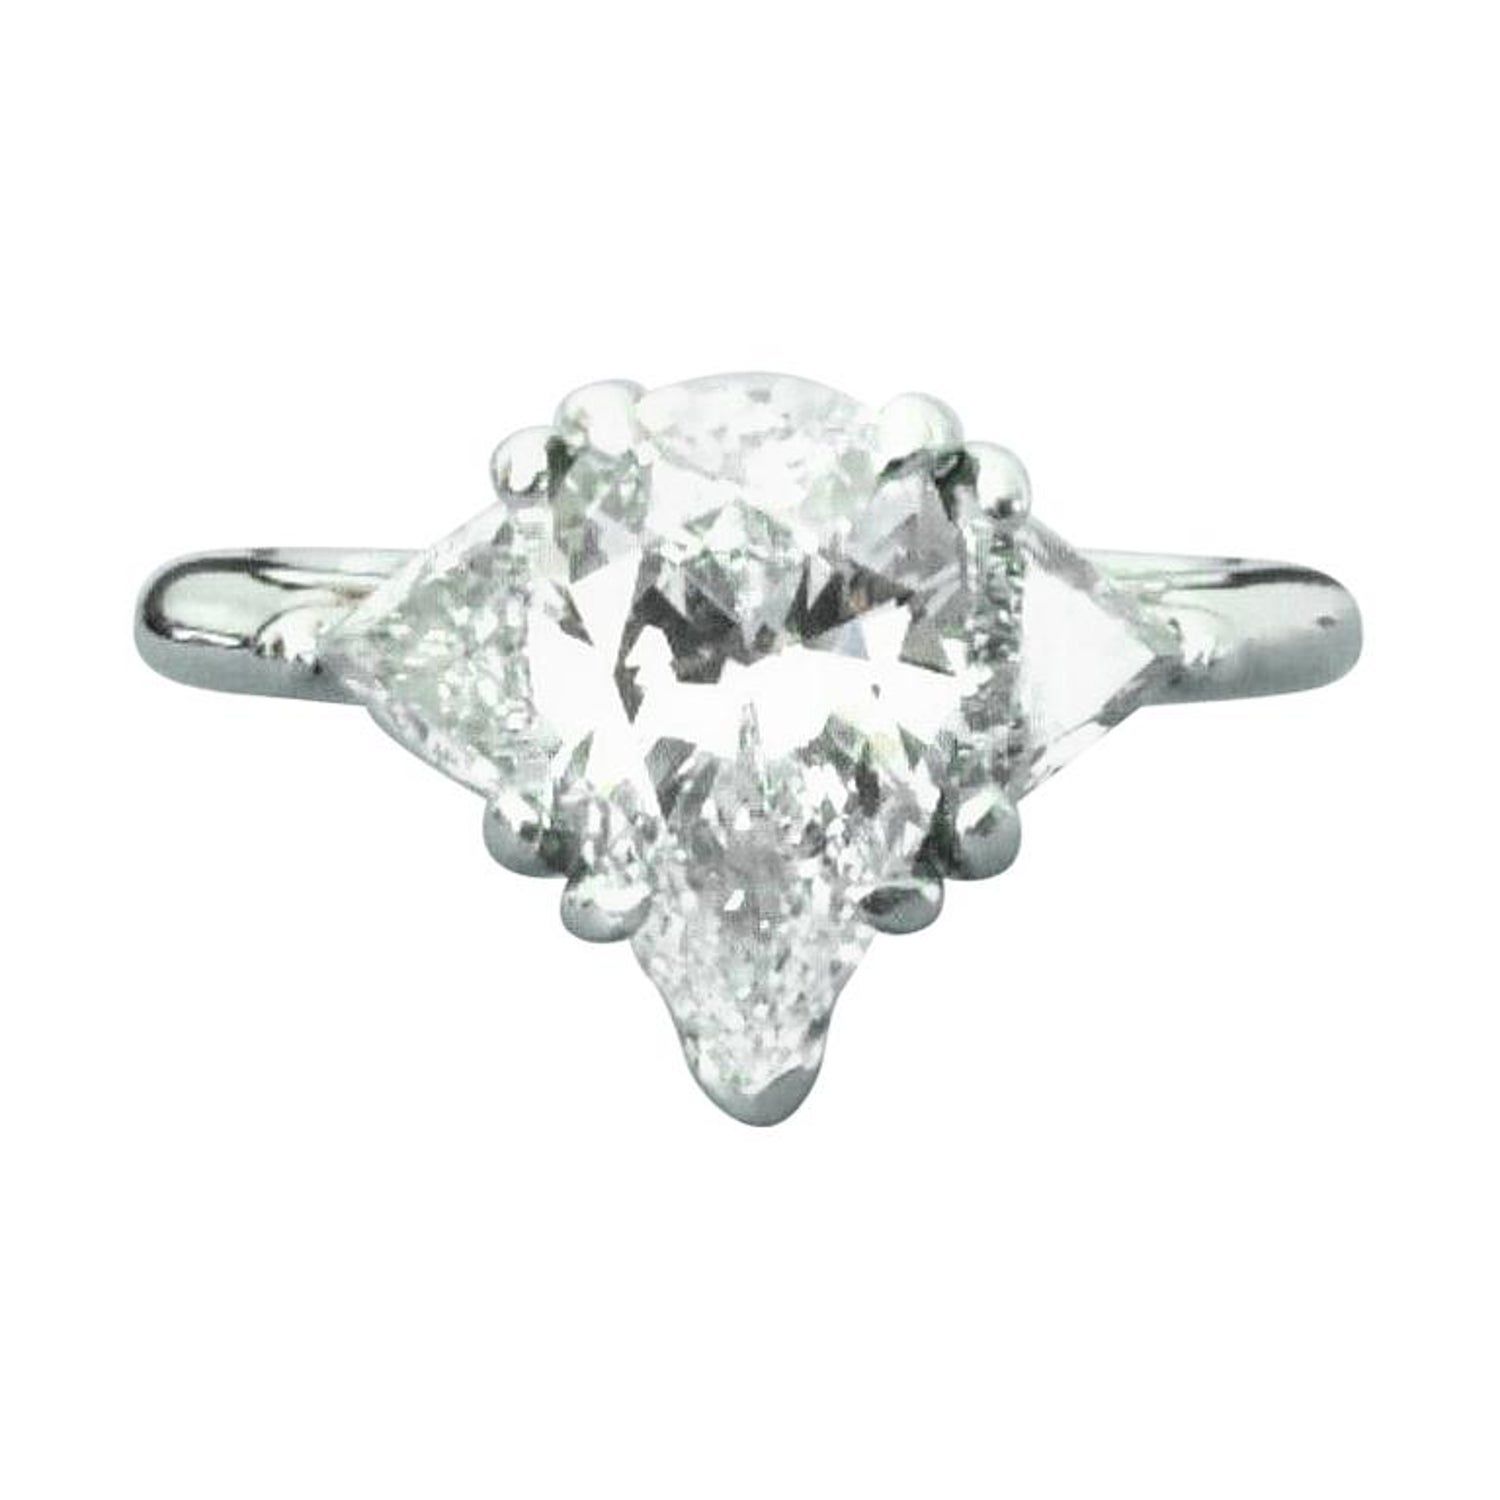 015a3169e Tiffany and Co. Pear Shaped Platinum and Diamond Engagement Ring 1.29 Carat  E VS2 at 1stdibs